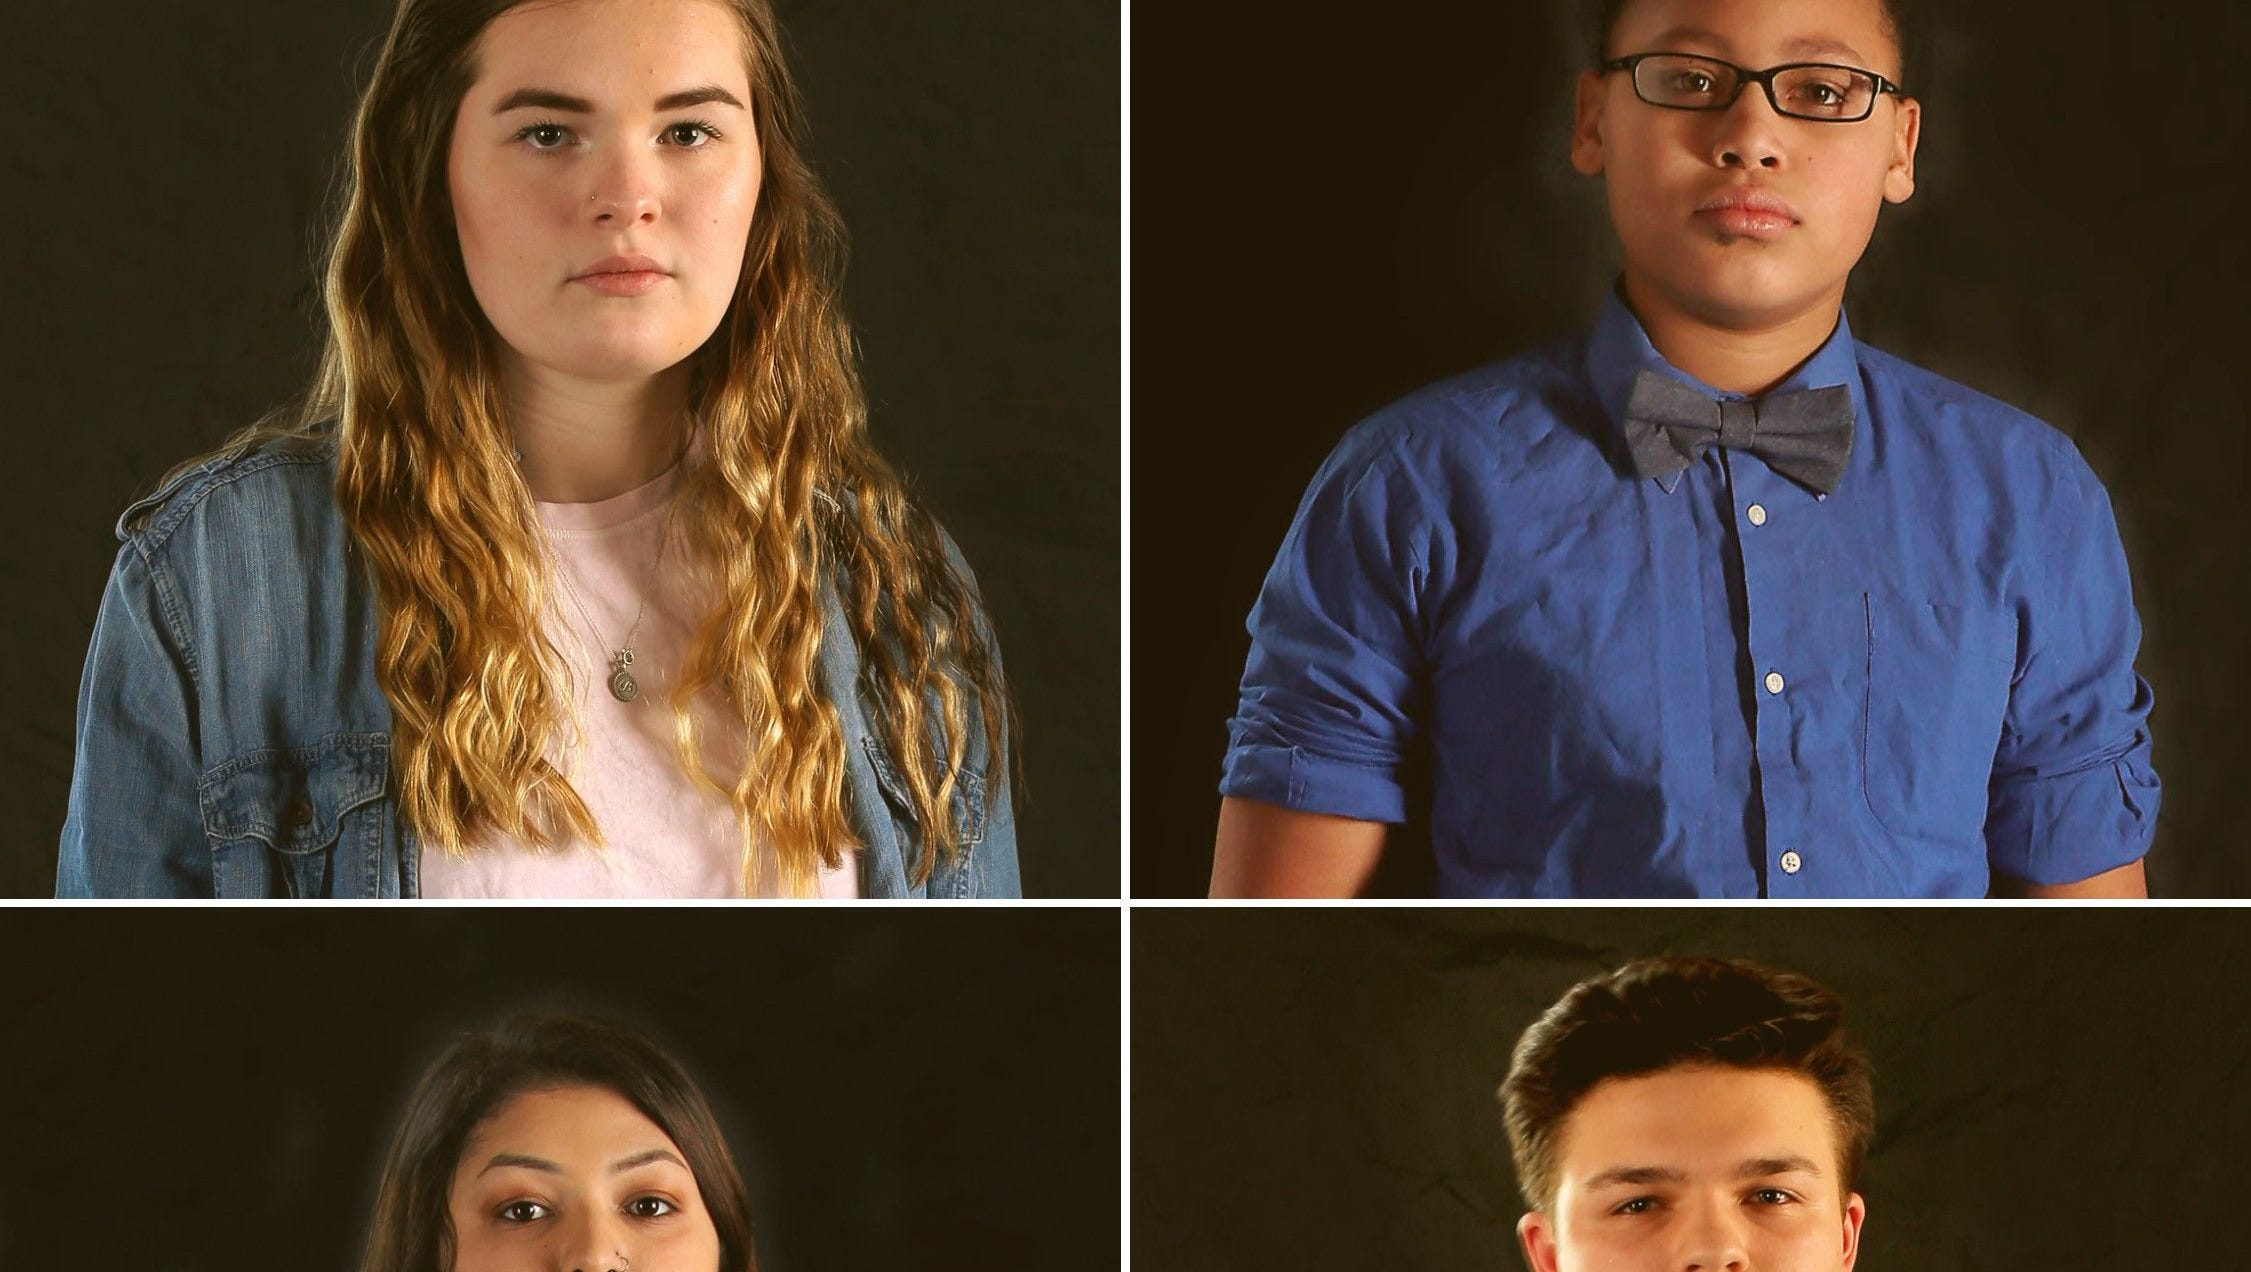 Sharing their stories: Teens will talk about their challenges in new Milwaukee PBS documentary